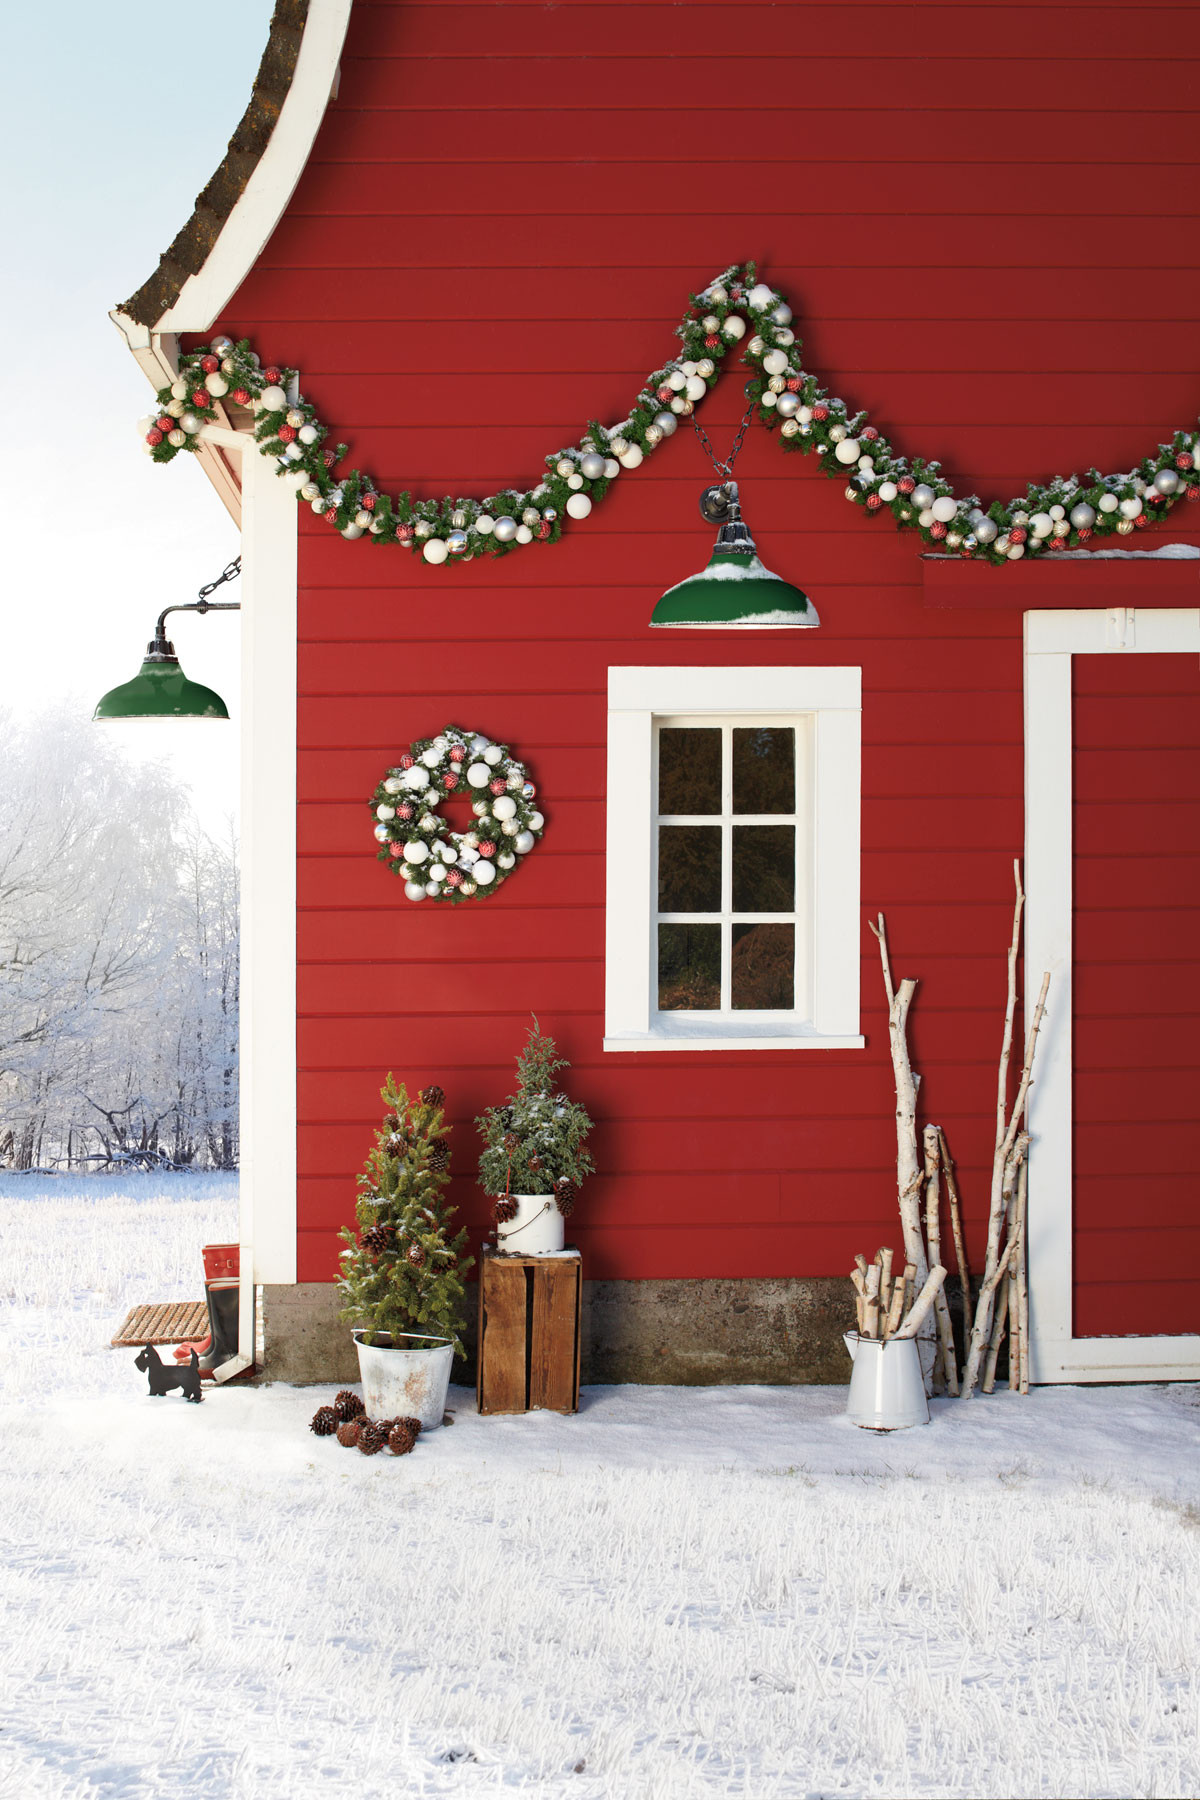 Backyard Christmas Decorations  27 Outdoor Christmas Decorations Ideas for Outside